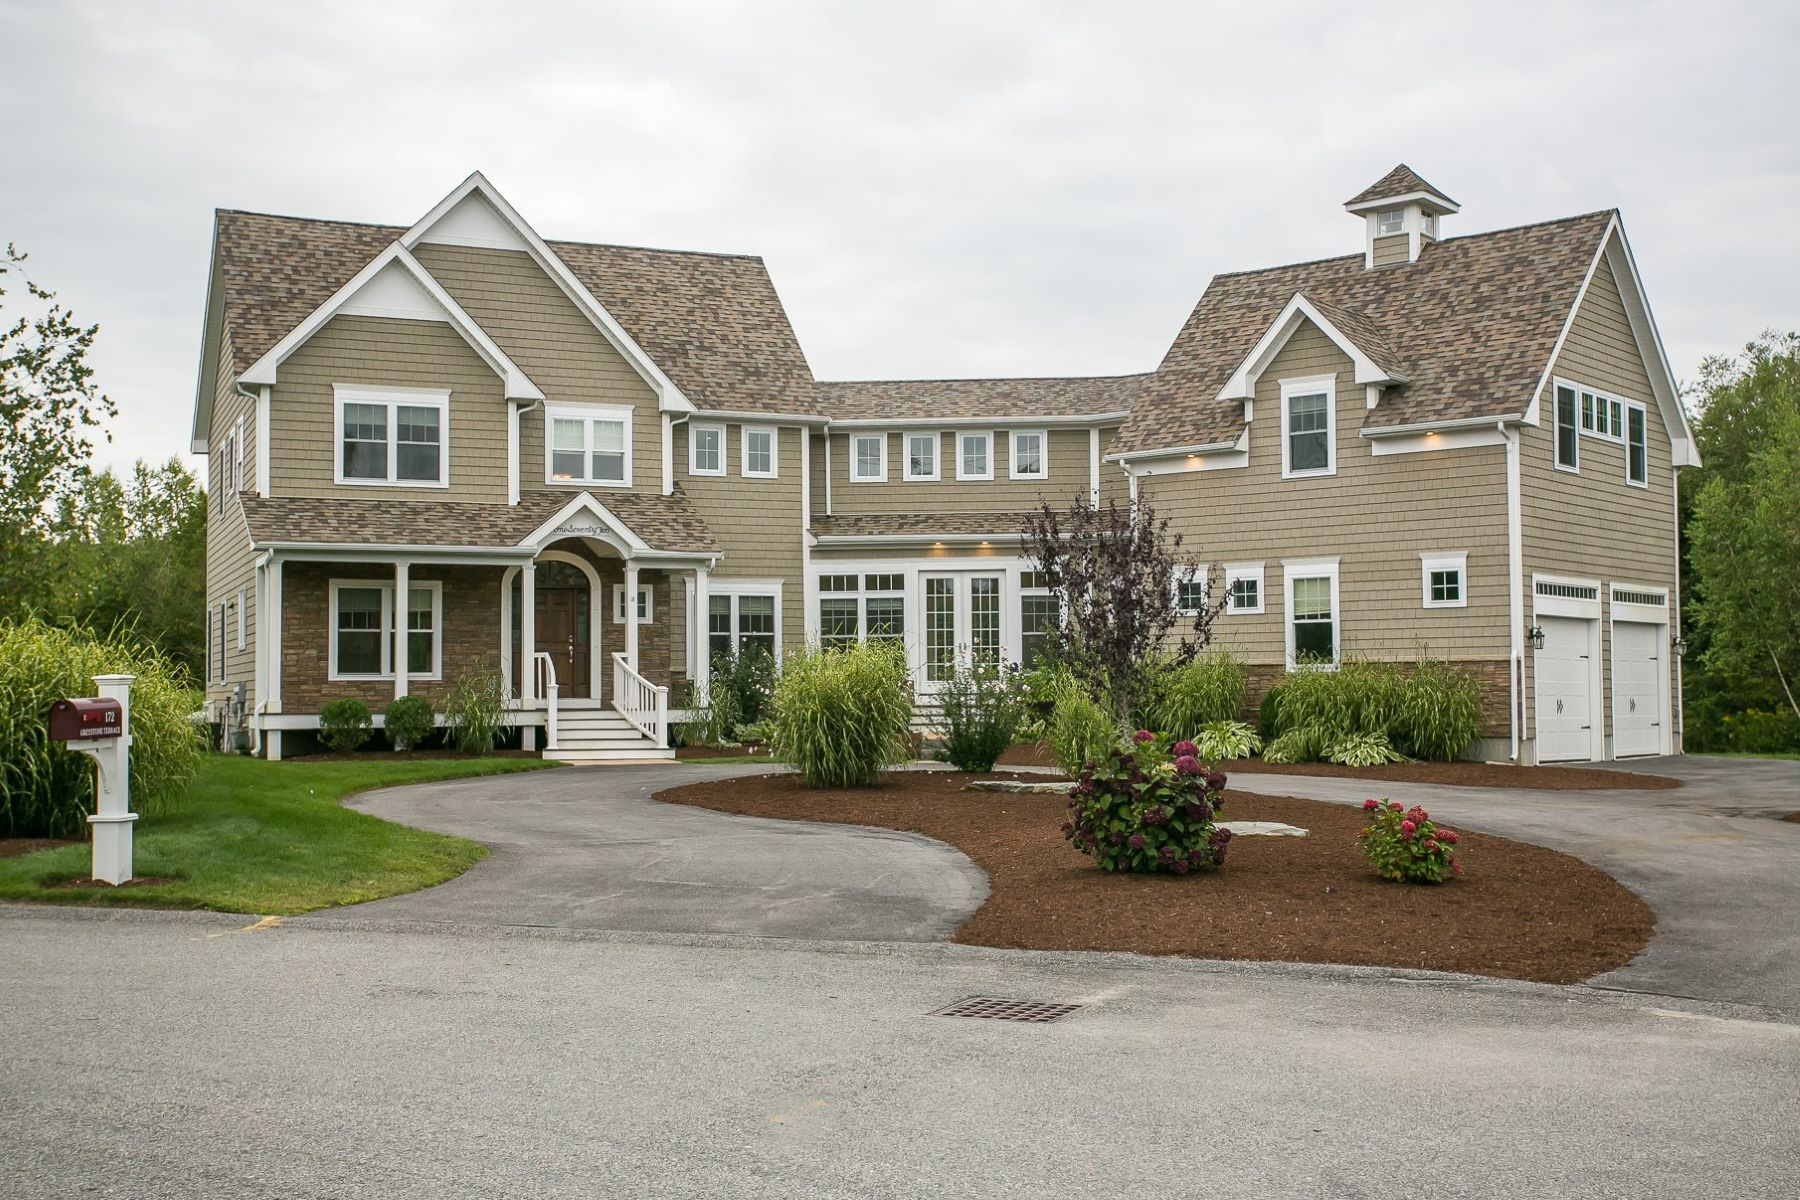 Single Family Homes for Sale at 172 Greystone Terrace, Portsmouth, RI Portsmouth, Rhode Island 02871 United States